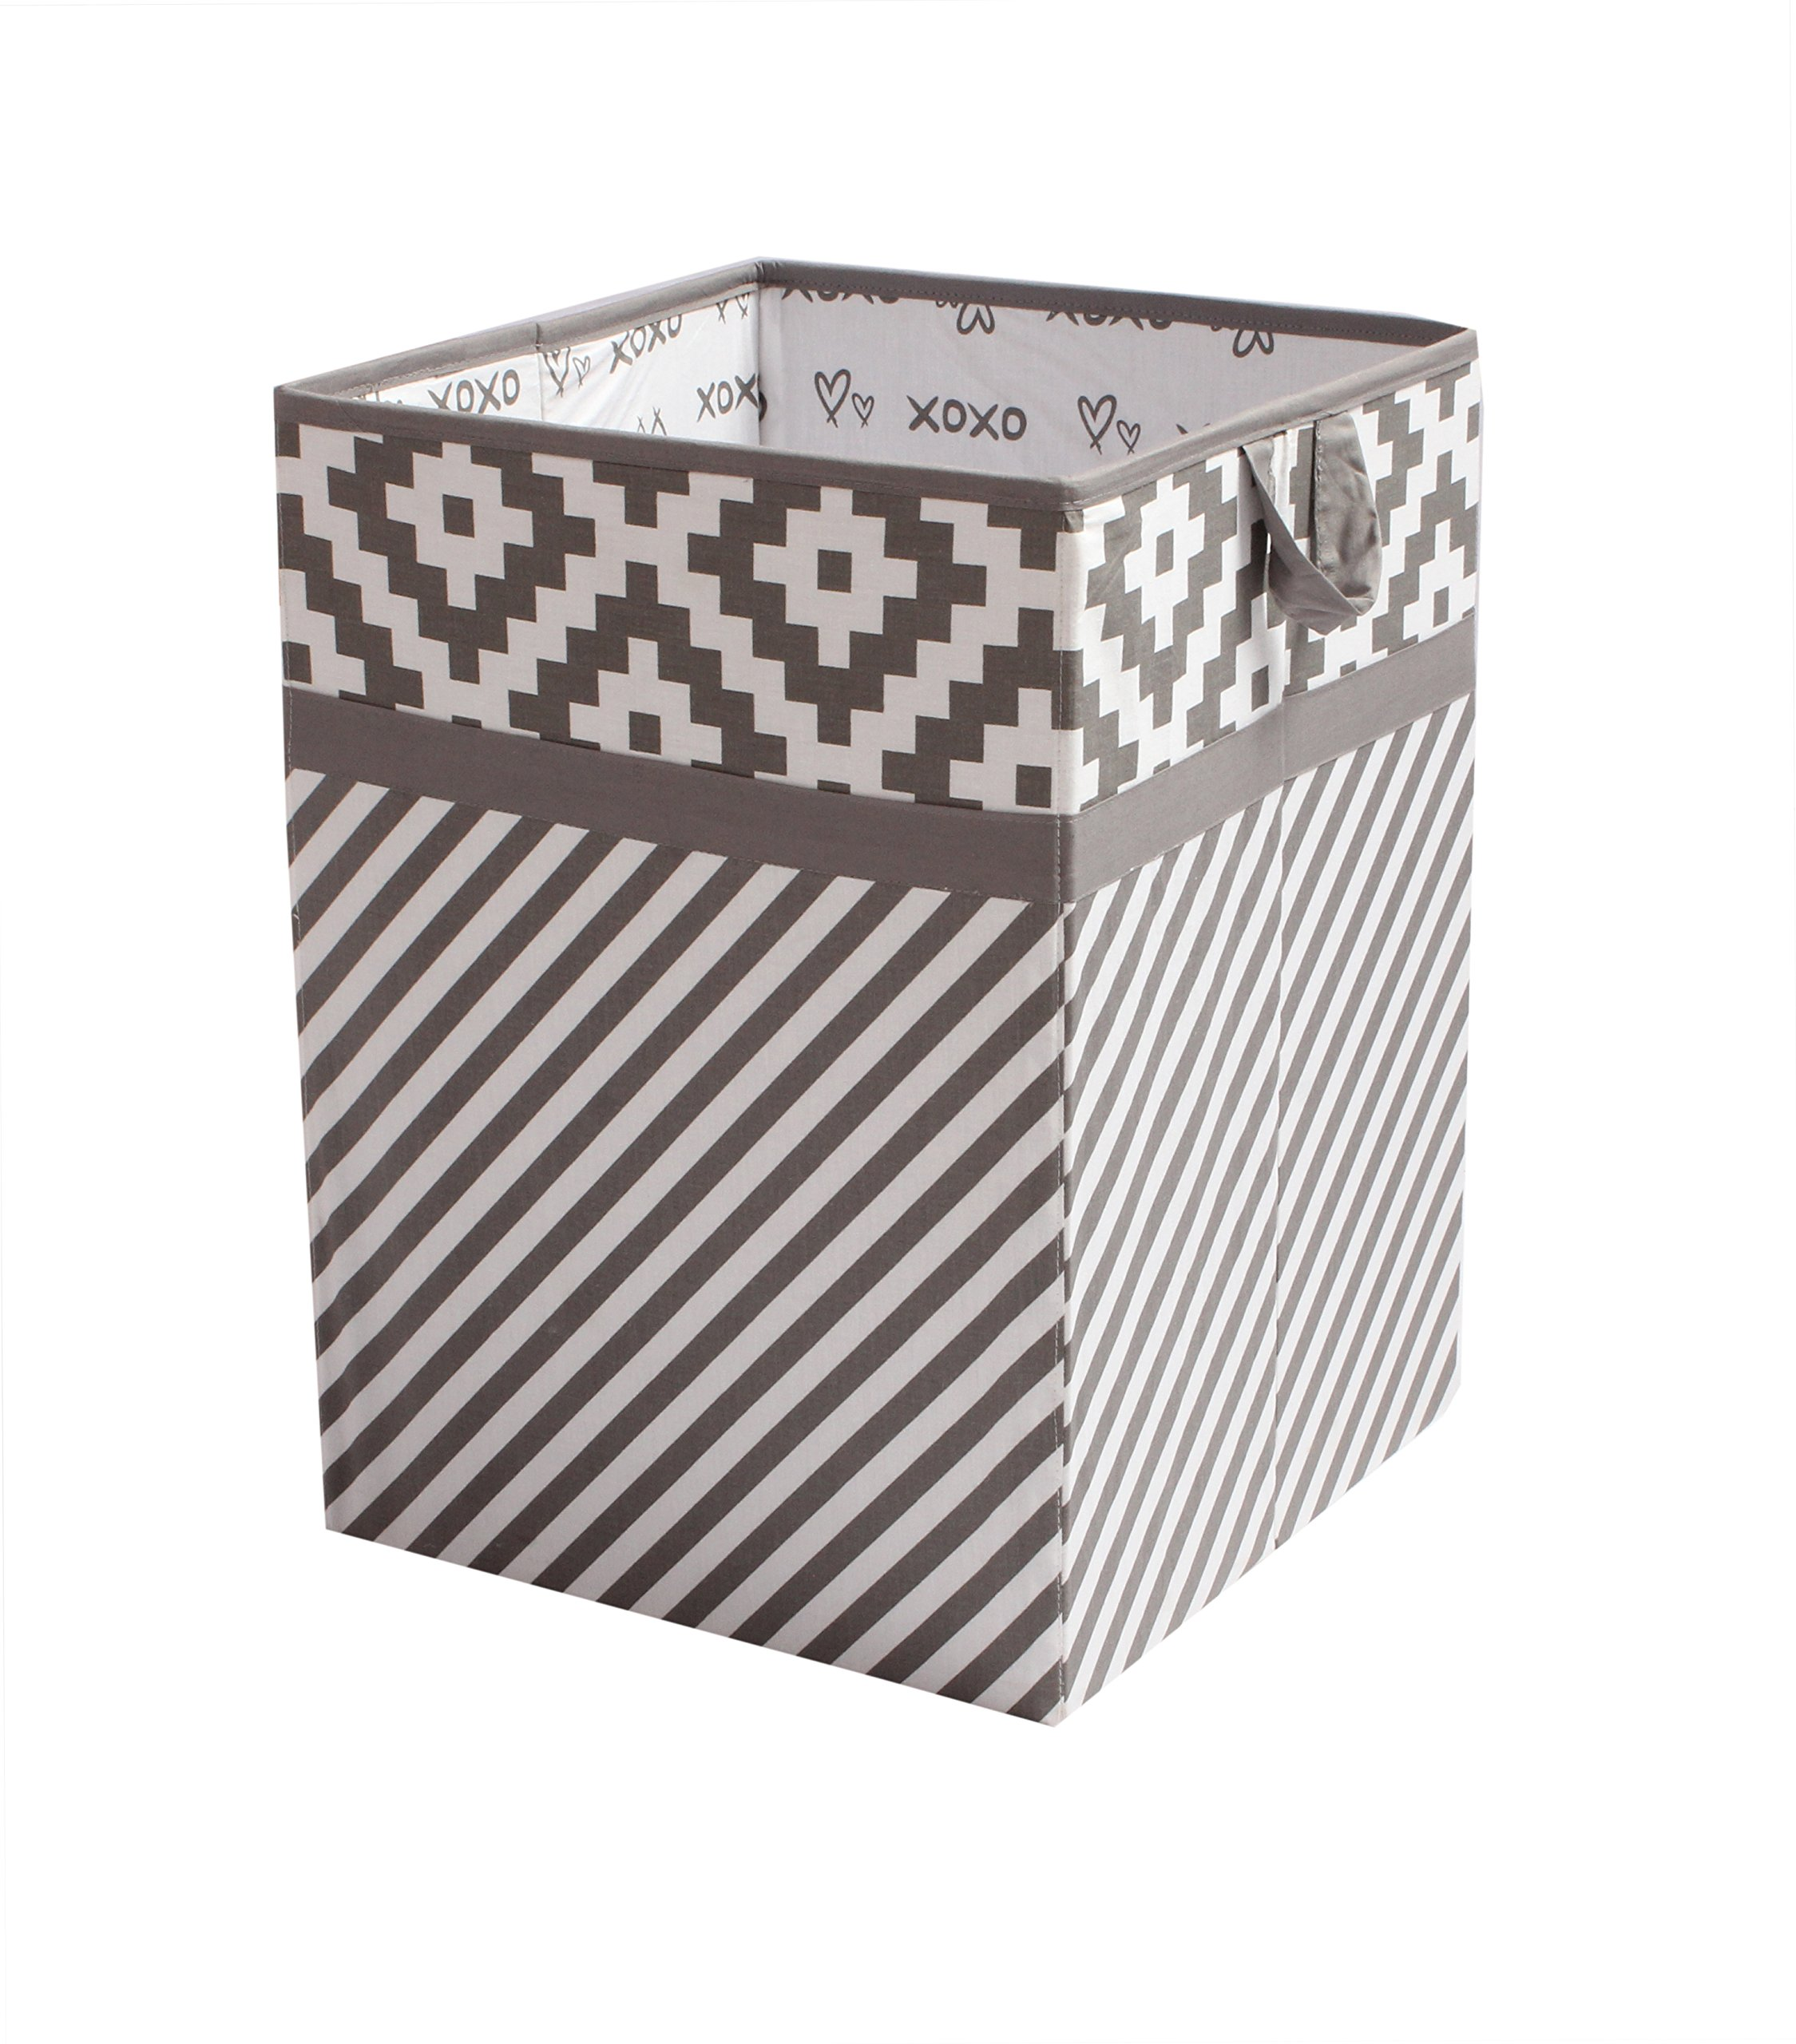 Bacati Love Fabric Collapsible Hamper, Grey/white, 14'' x 14'' x 19''